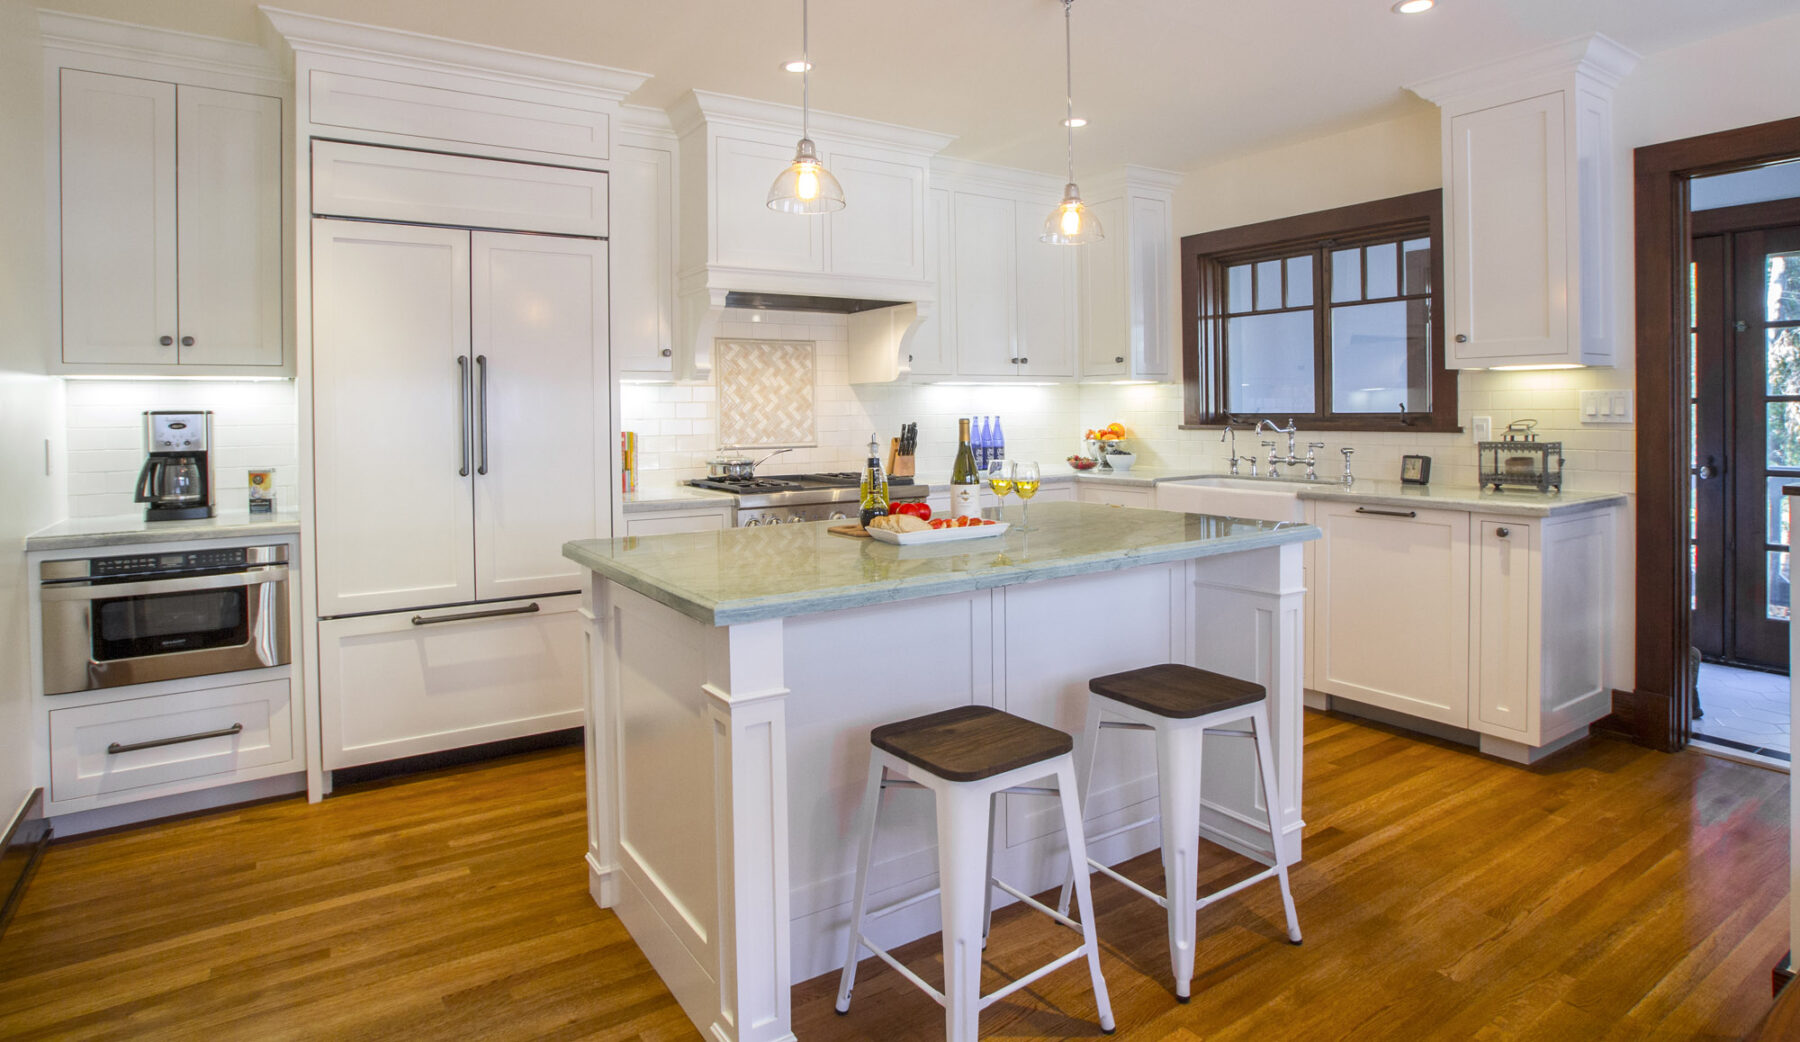 A 1910 Craftsman kitchen remodel with amenities for today's lifestyle